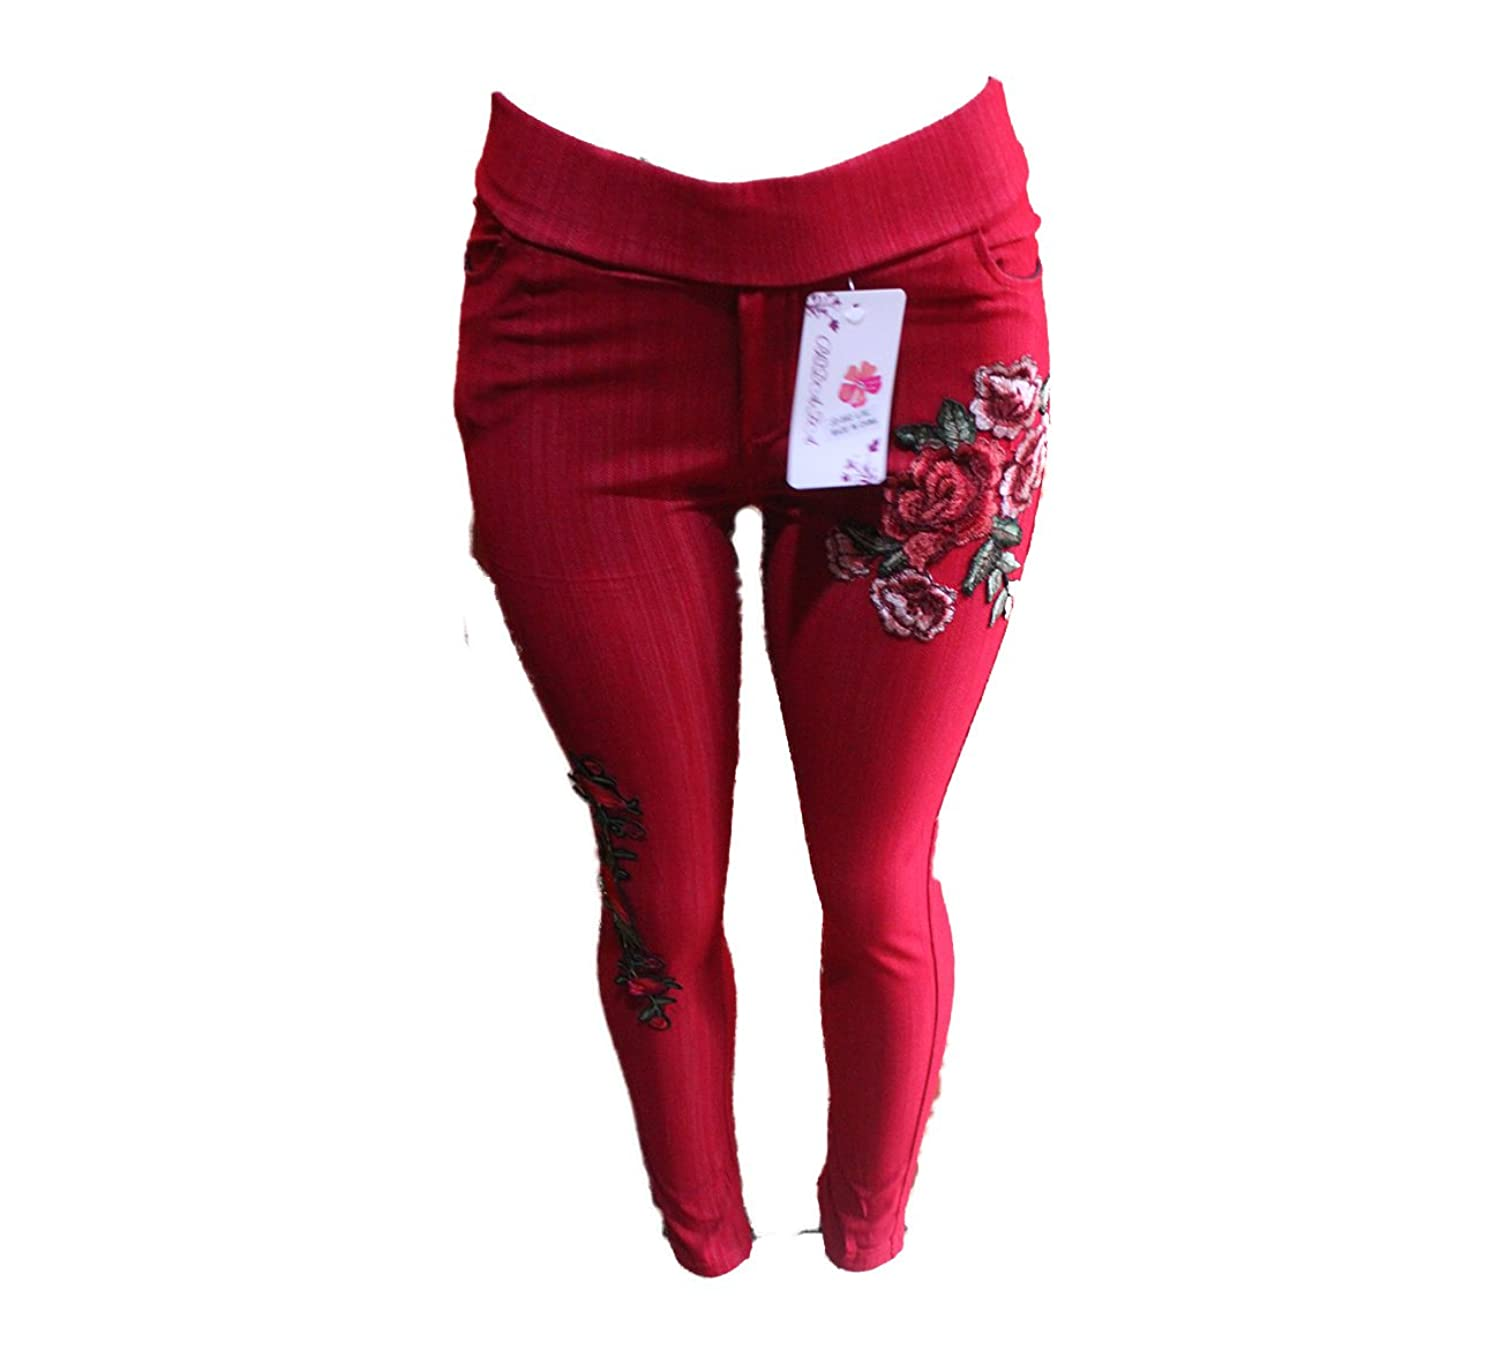 Cheap BCA fashion New Stretch Red Color Flower Embroided High Waist Jegging Pants-SM/LXL